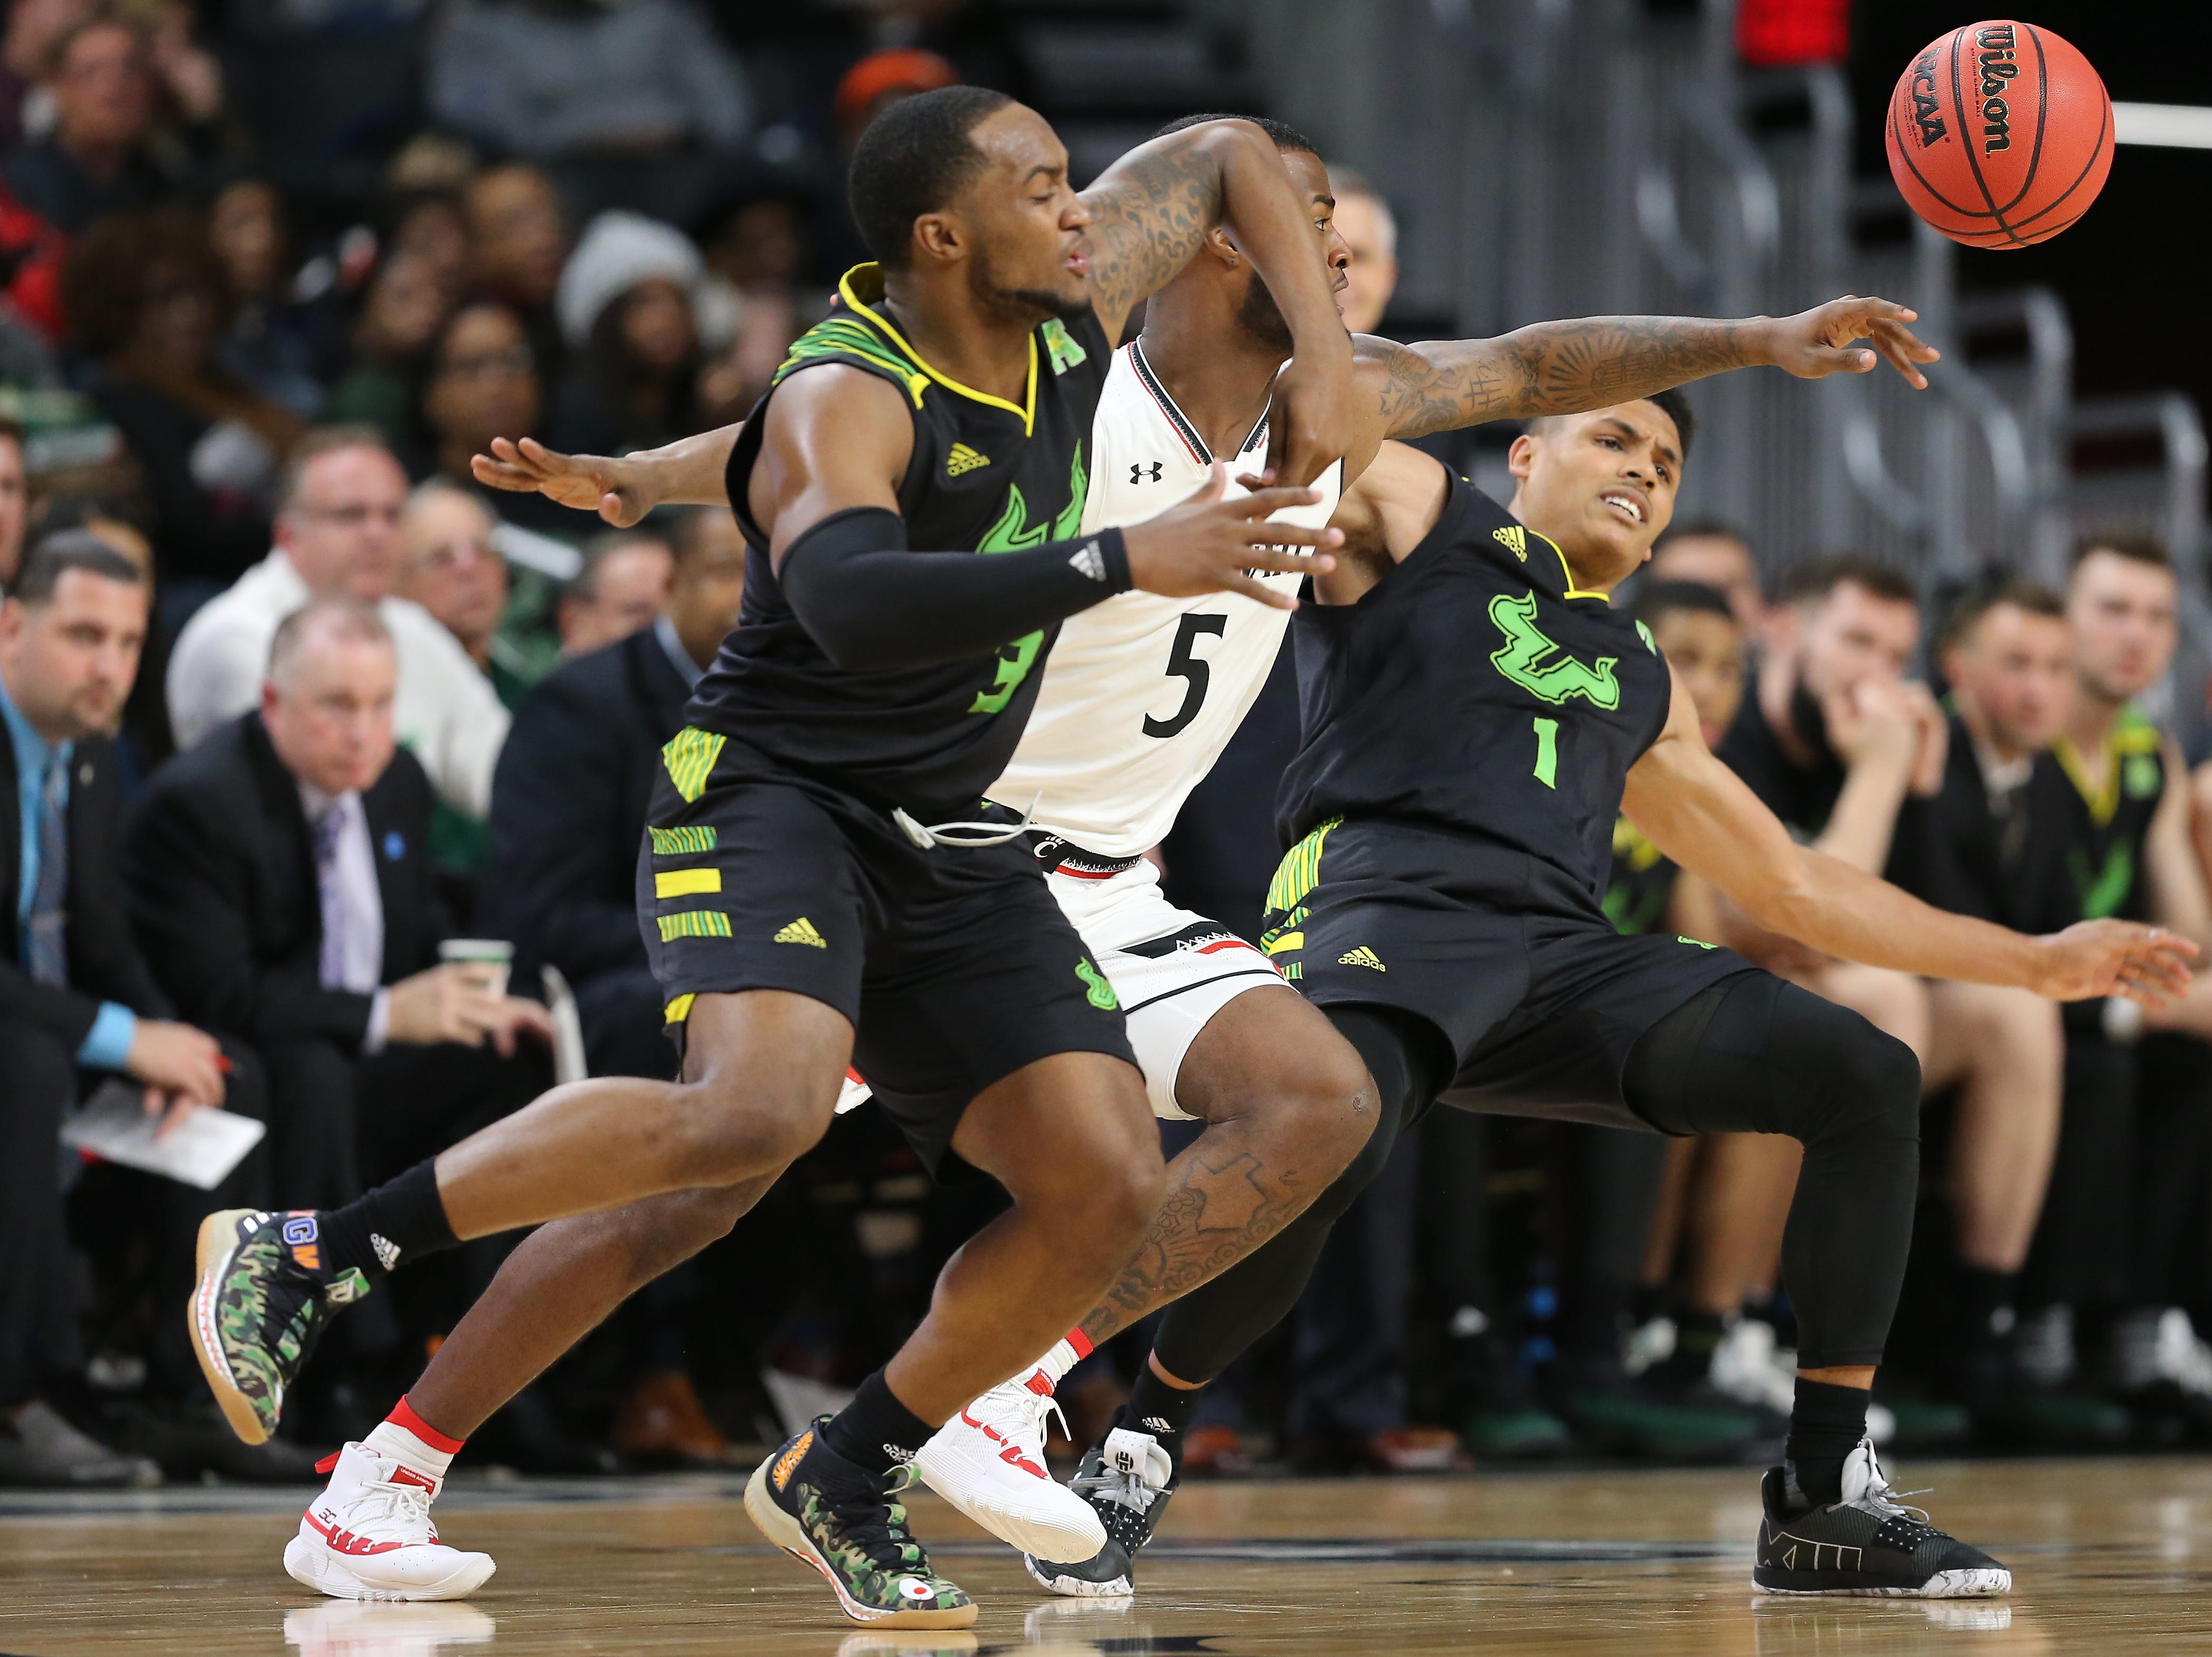 Cincinnati Bearcats guard Trevor Moore (5) is called for a foul after going for the steal of South Florida Bulls guard Xavier Castaneda (1) in the second half of an NCAA college basketball game, Tuesday, Jan. 15, 2019, at Fifth Third Arena in Cincinnati. Cincinnati won 82-74.